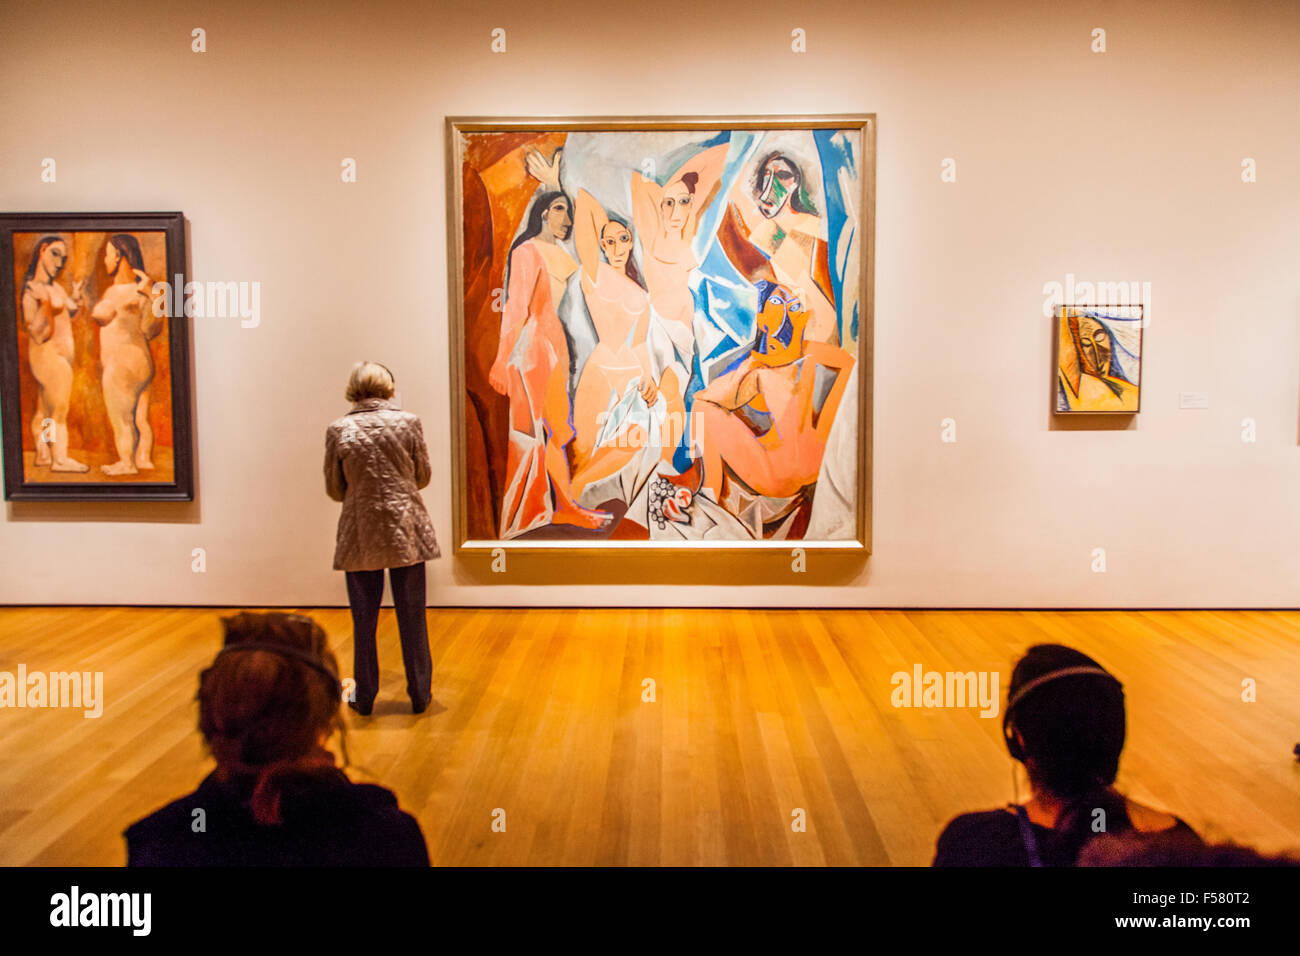 pablo picasso peinture 39 les demoiselles d 39 avignon 39 au mus e d 39 art moderne moma new york l. Black Bedroom Furniture Sets. Home Design Ideas